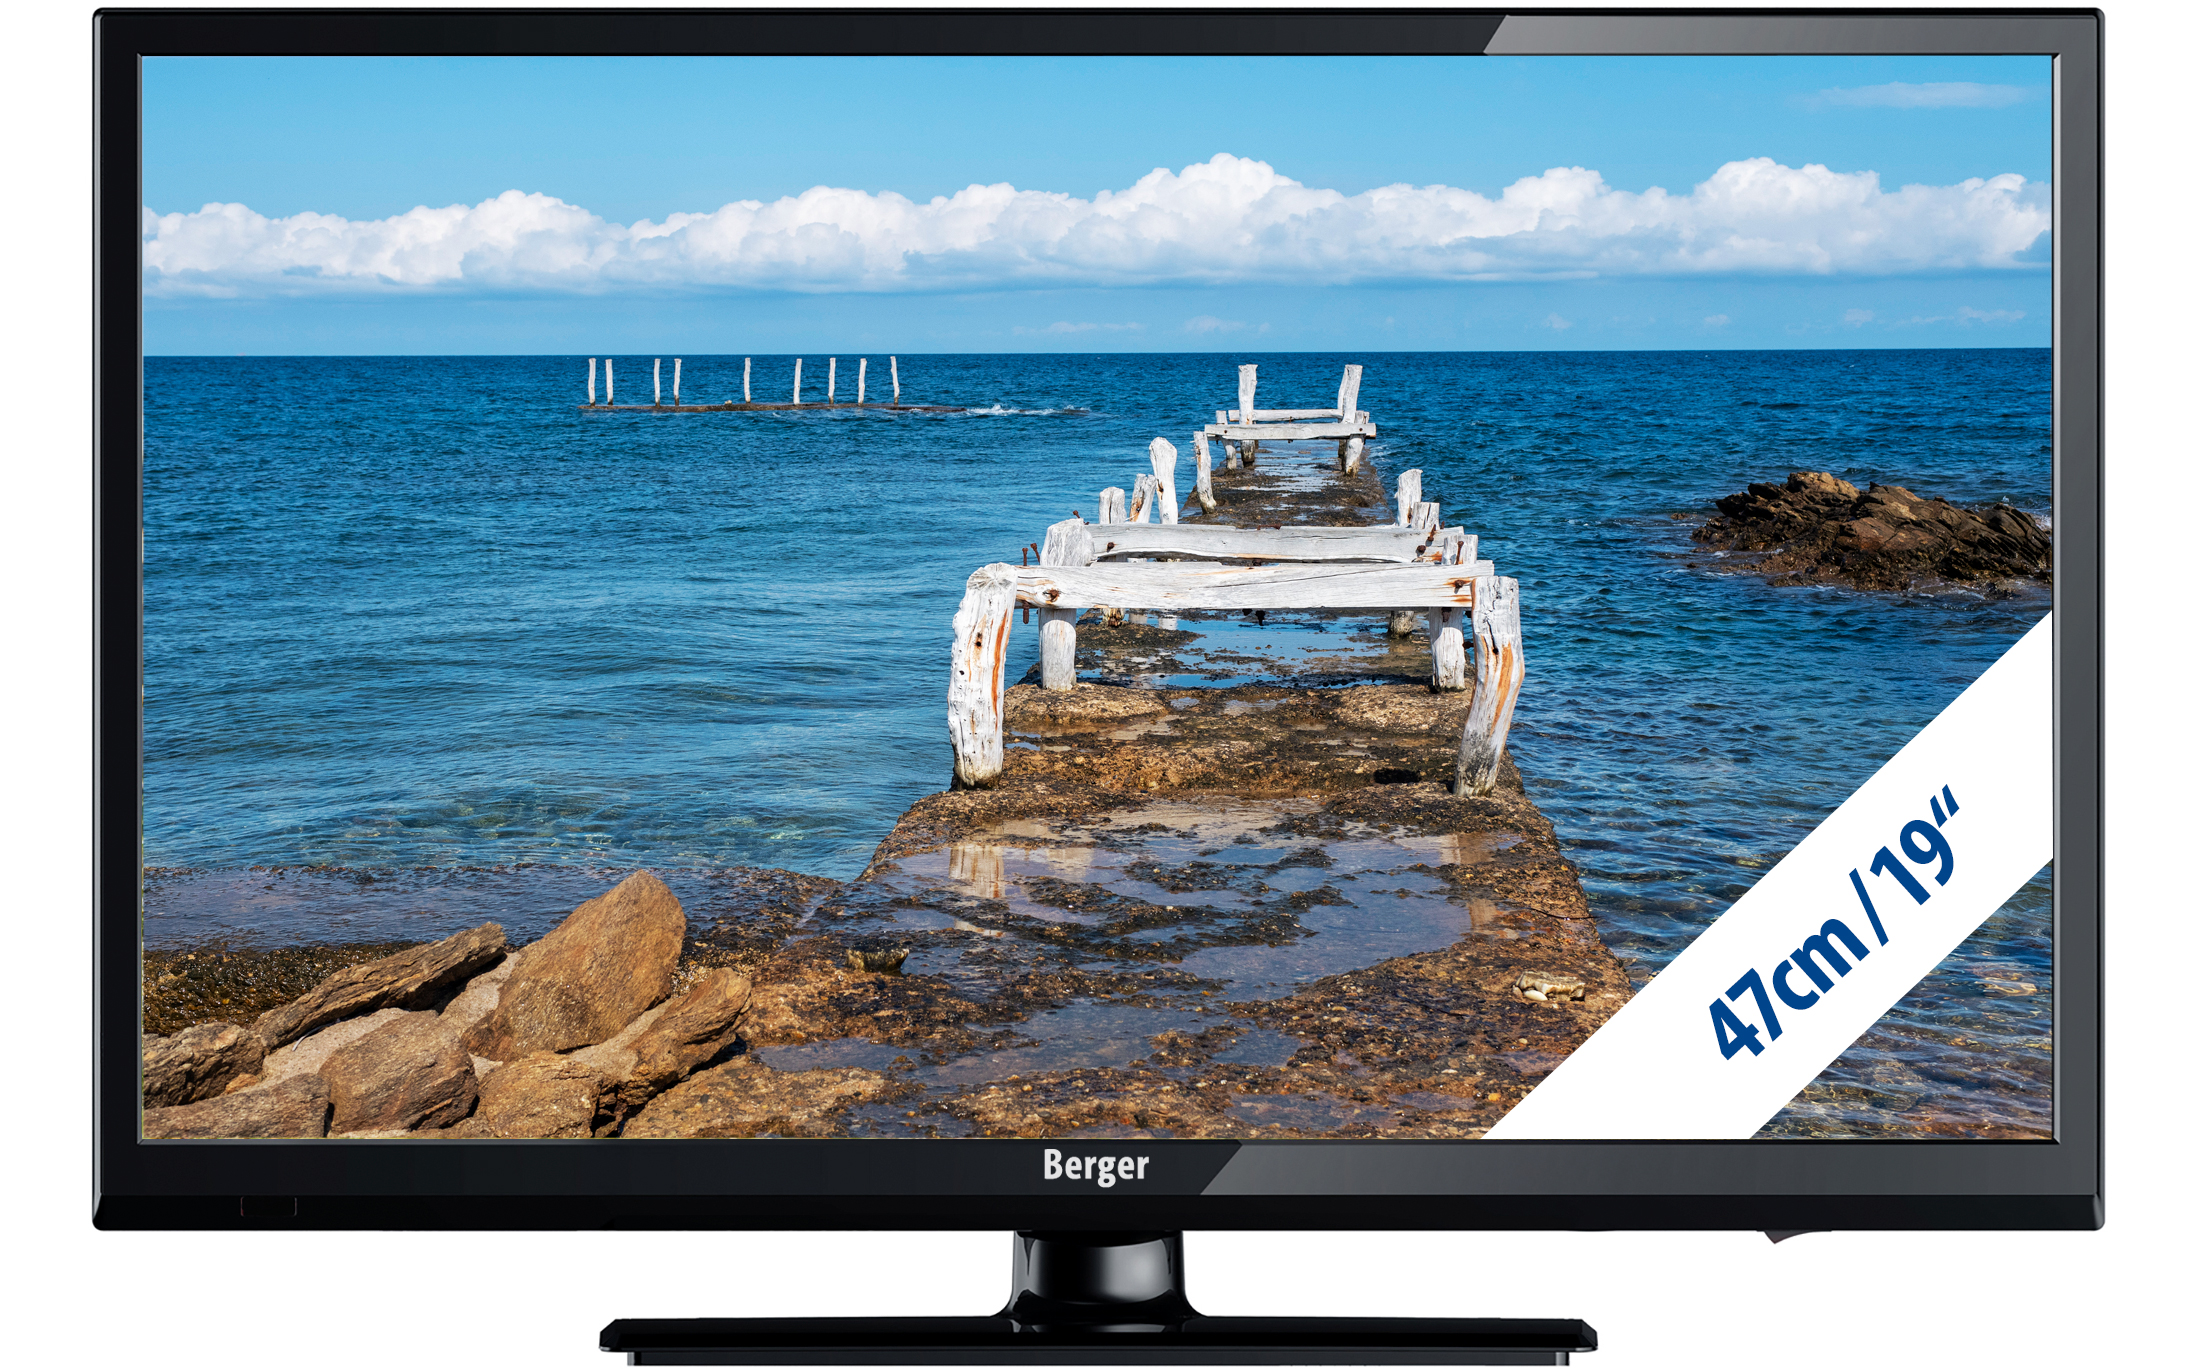 Berger Camping TV LED Fernseher 19 Zoll